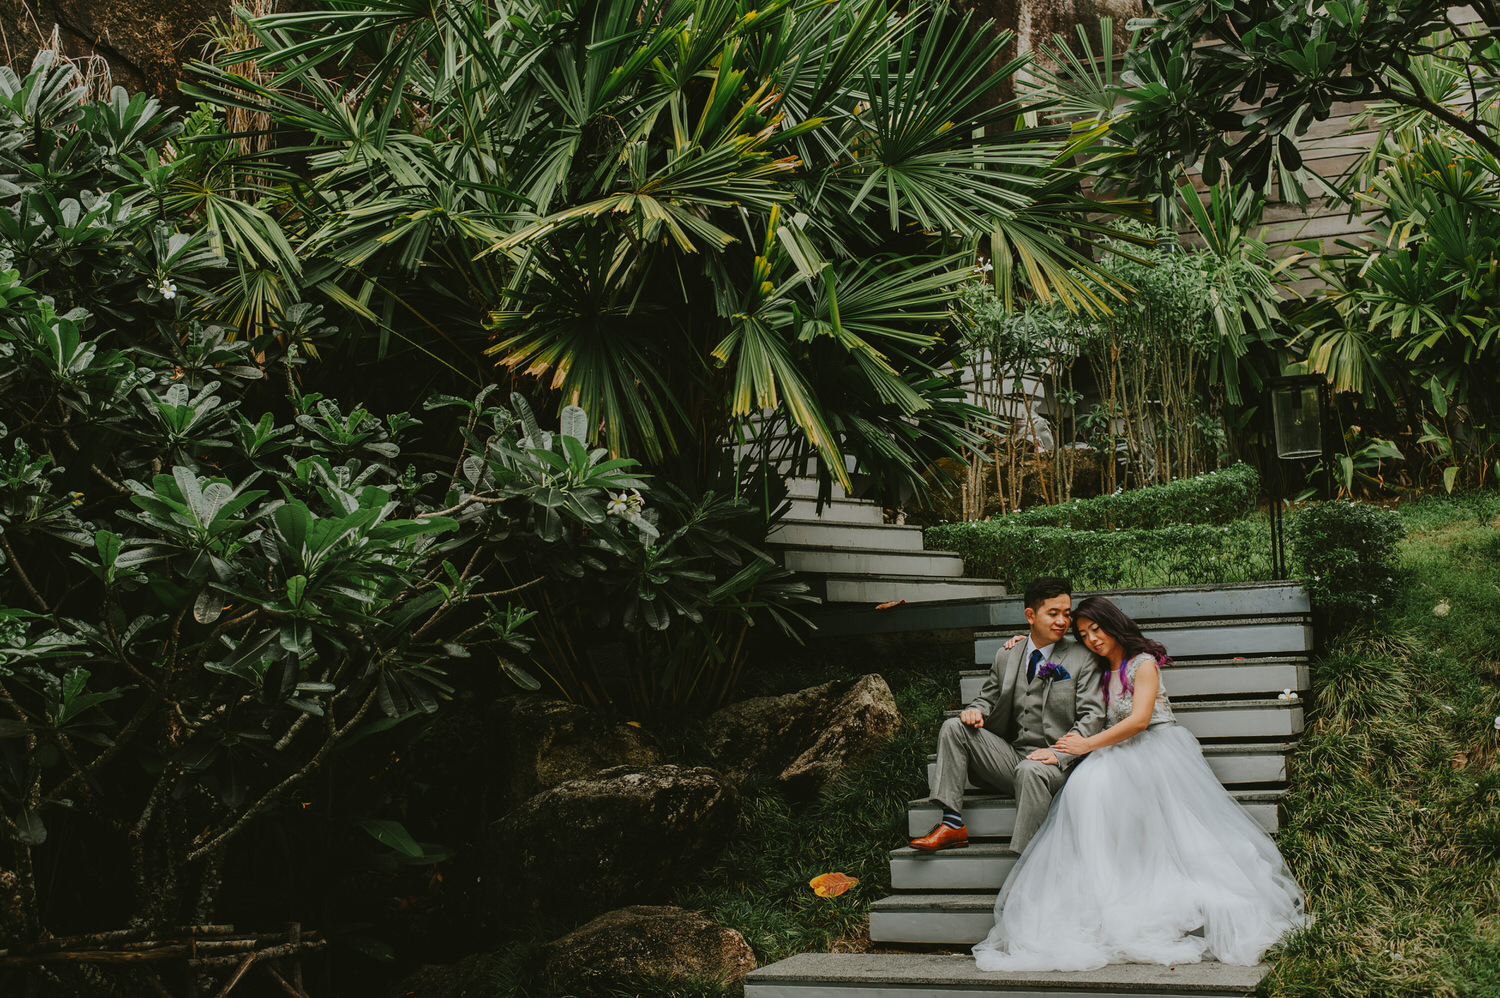 phuket wedding-diktatphotography-alex&andy wedding-161